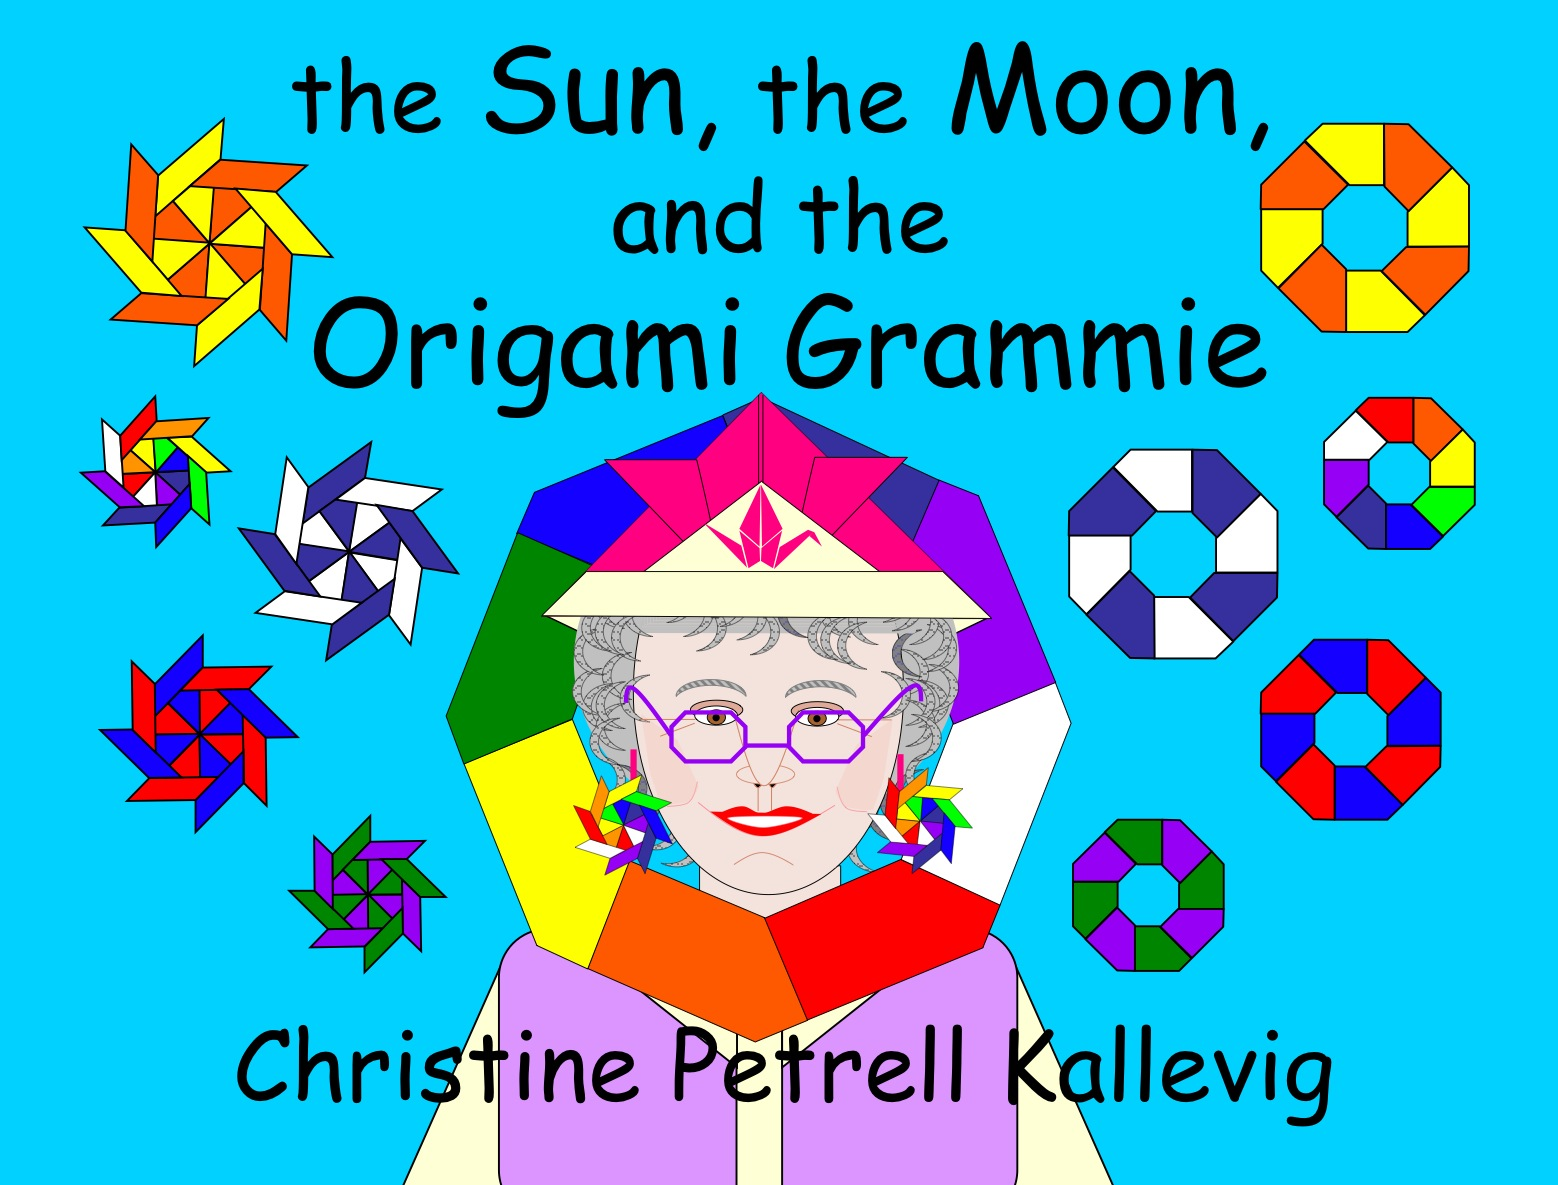 the Sun, the Moon, and the Origami Grammie by Christine Petrell Kallevig